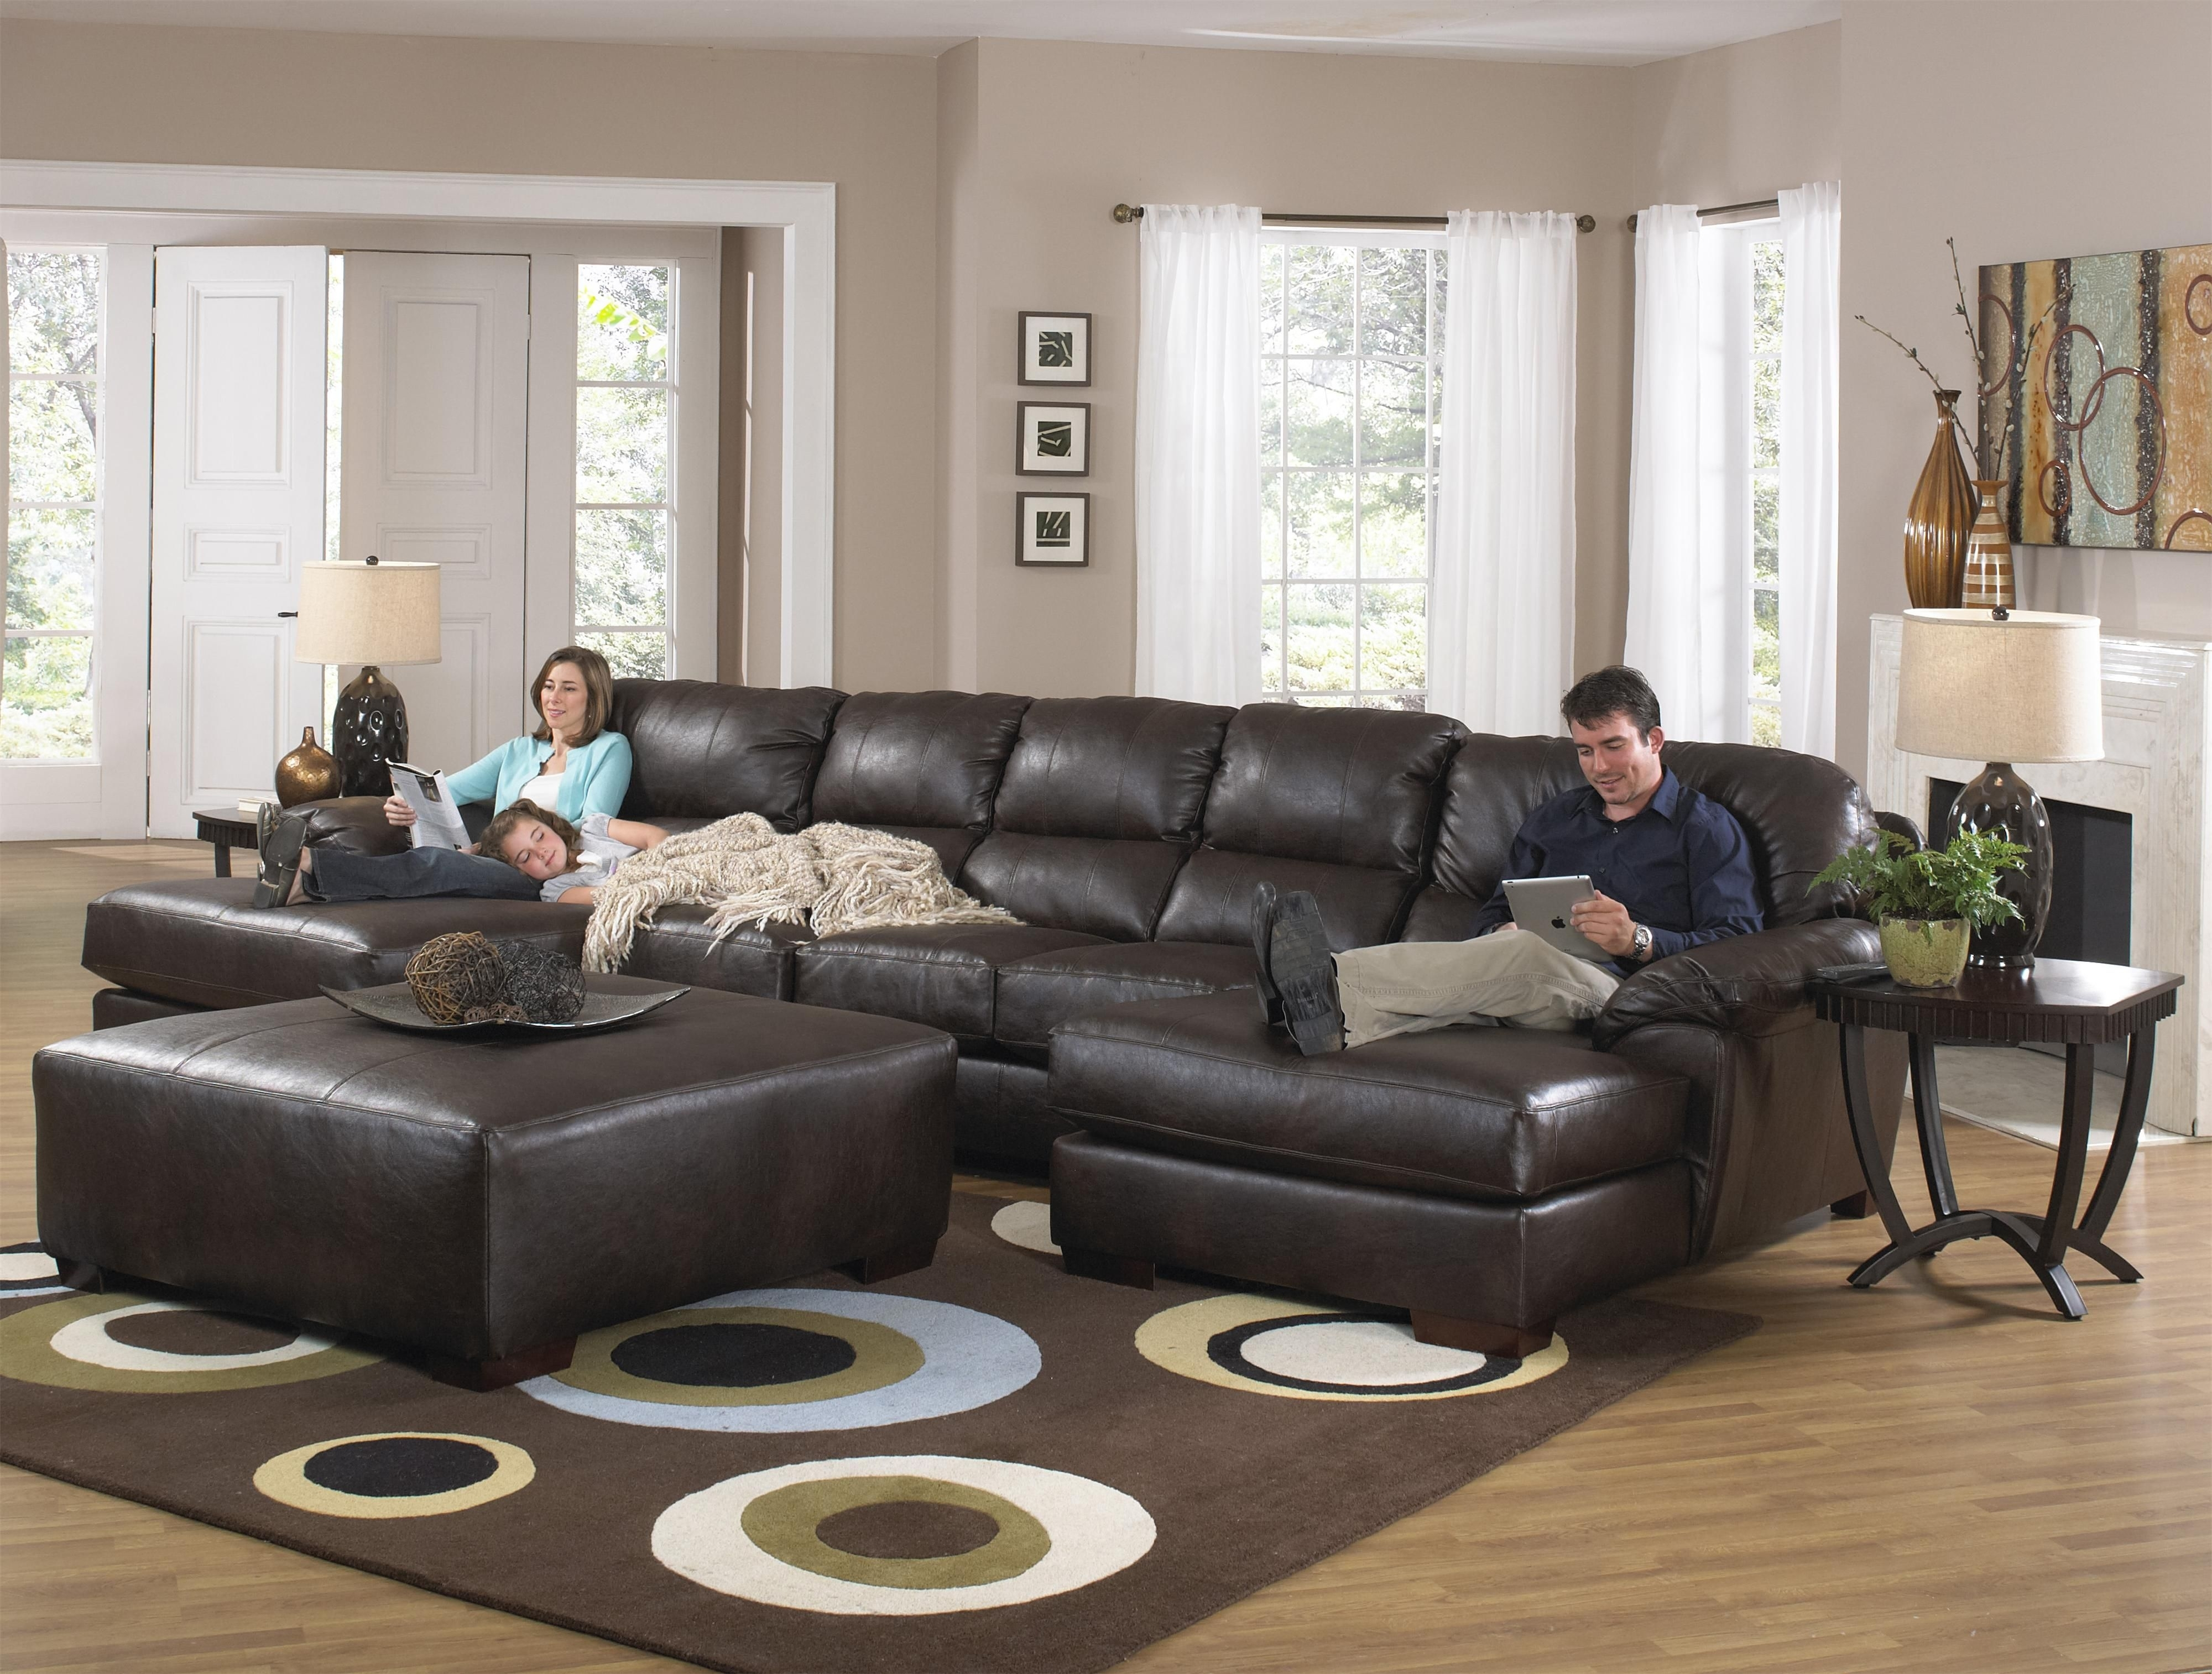 Lawson Two Chaise Sectional Sofa With Five Total Seatsjackson Pertaining To Huntsville Al Sectional Sofas (View 2 of 10)